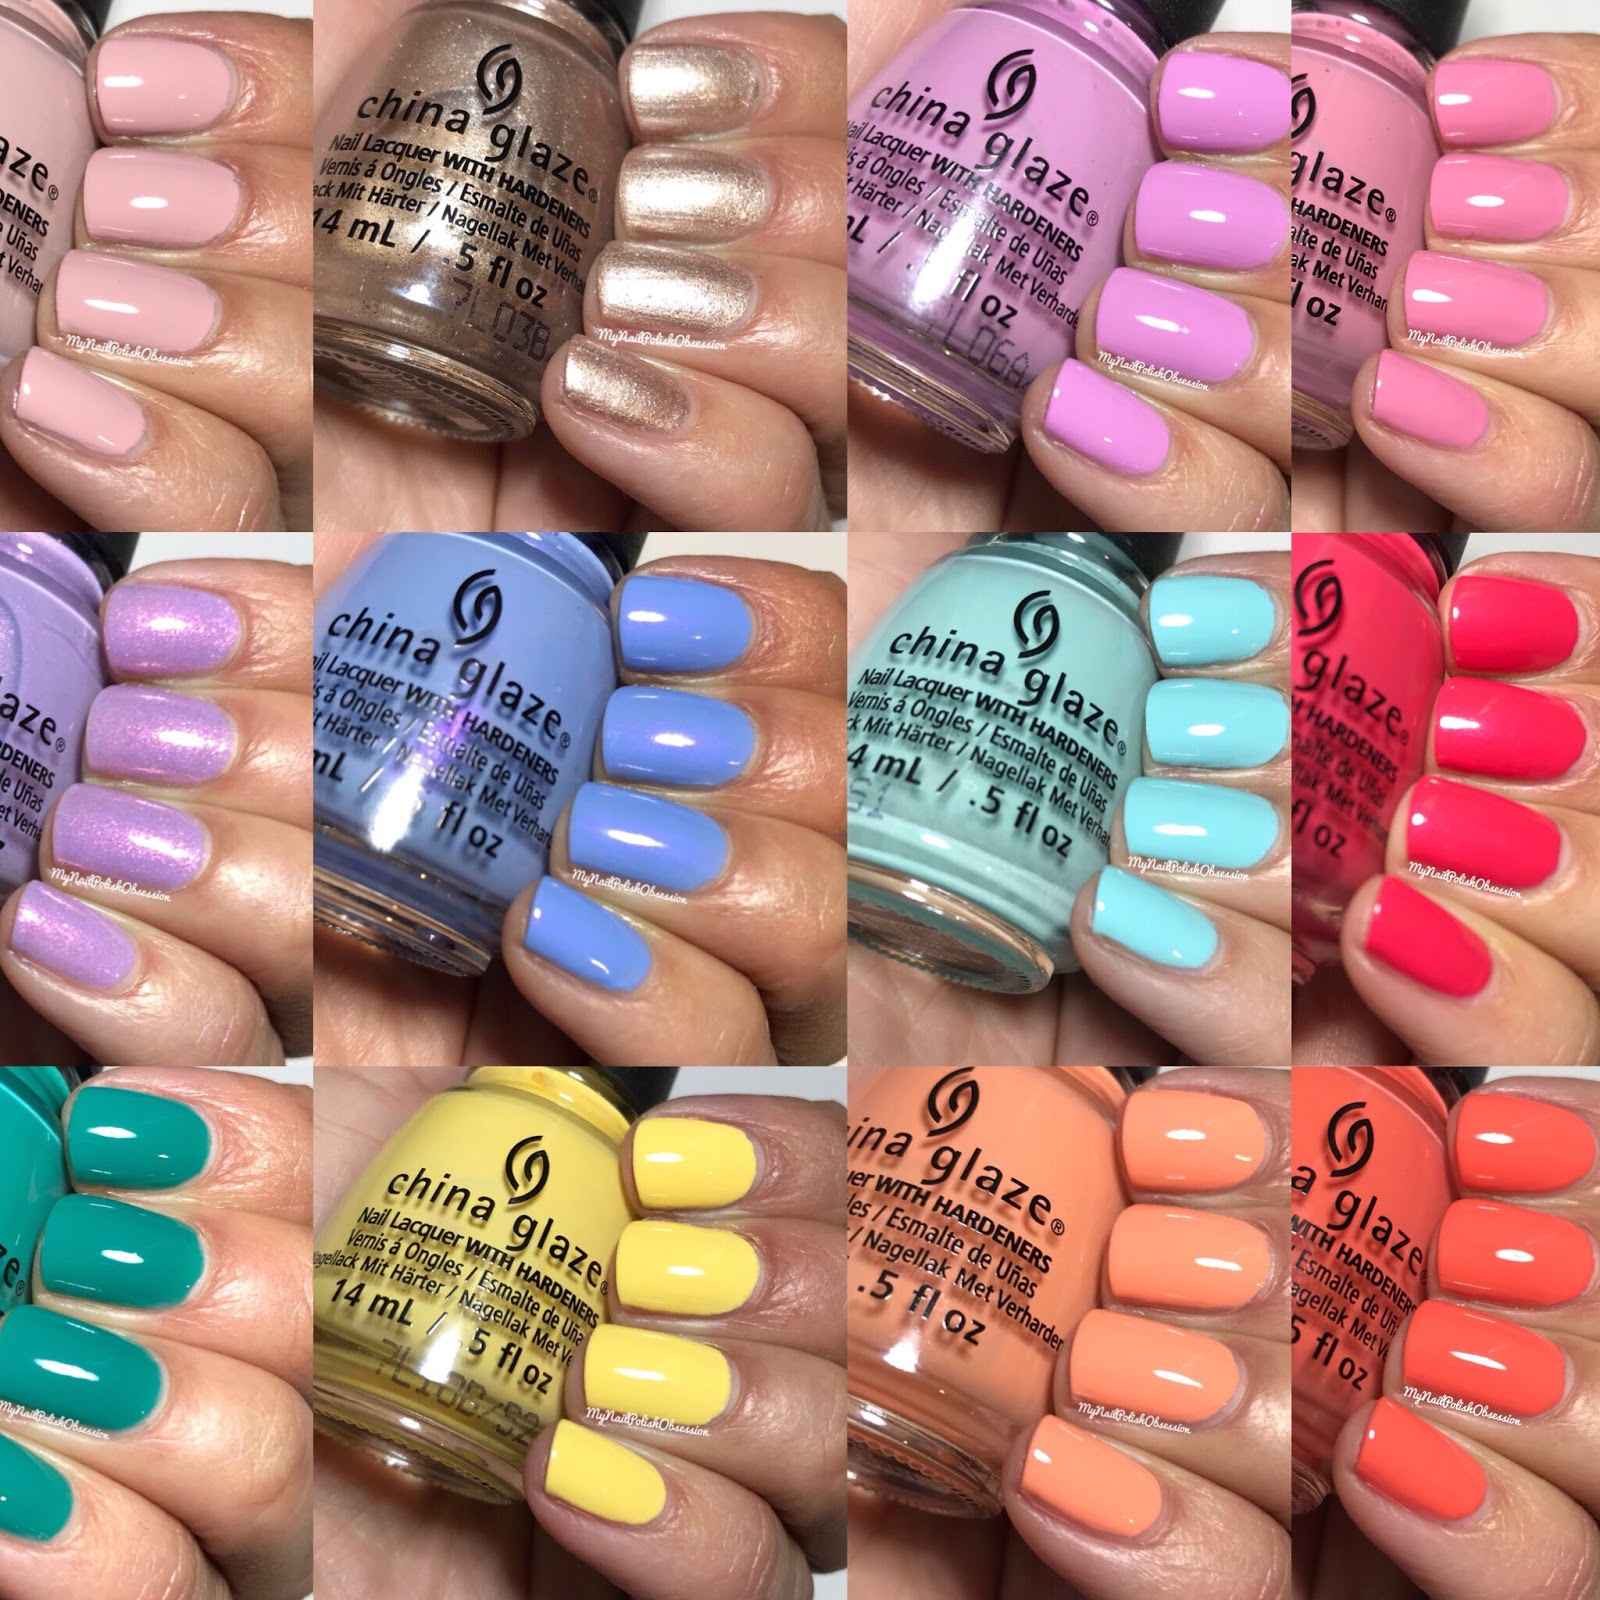 My Nail Polish Obsession: China Glaze; Chic Physique, Spring 2018